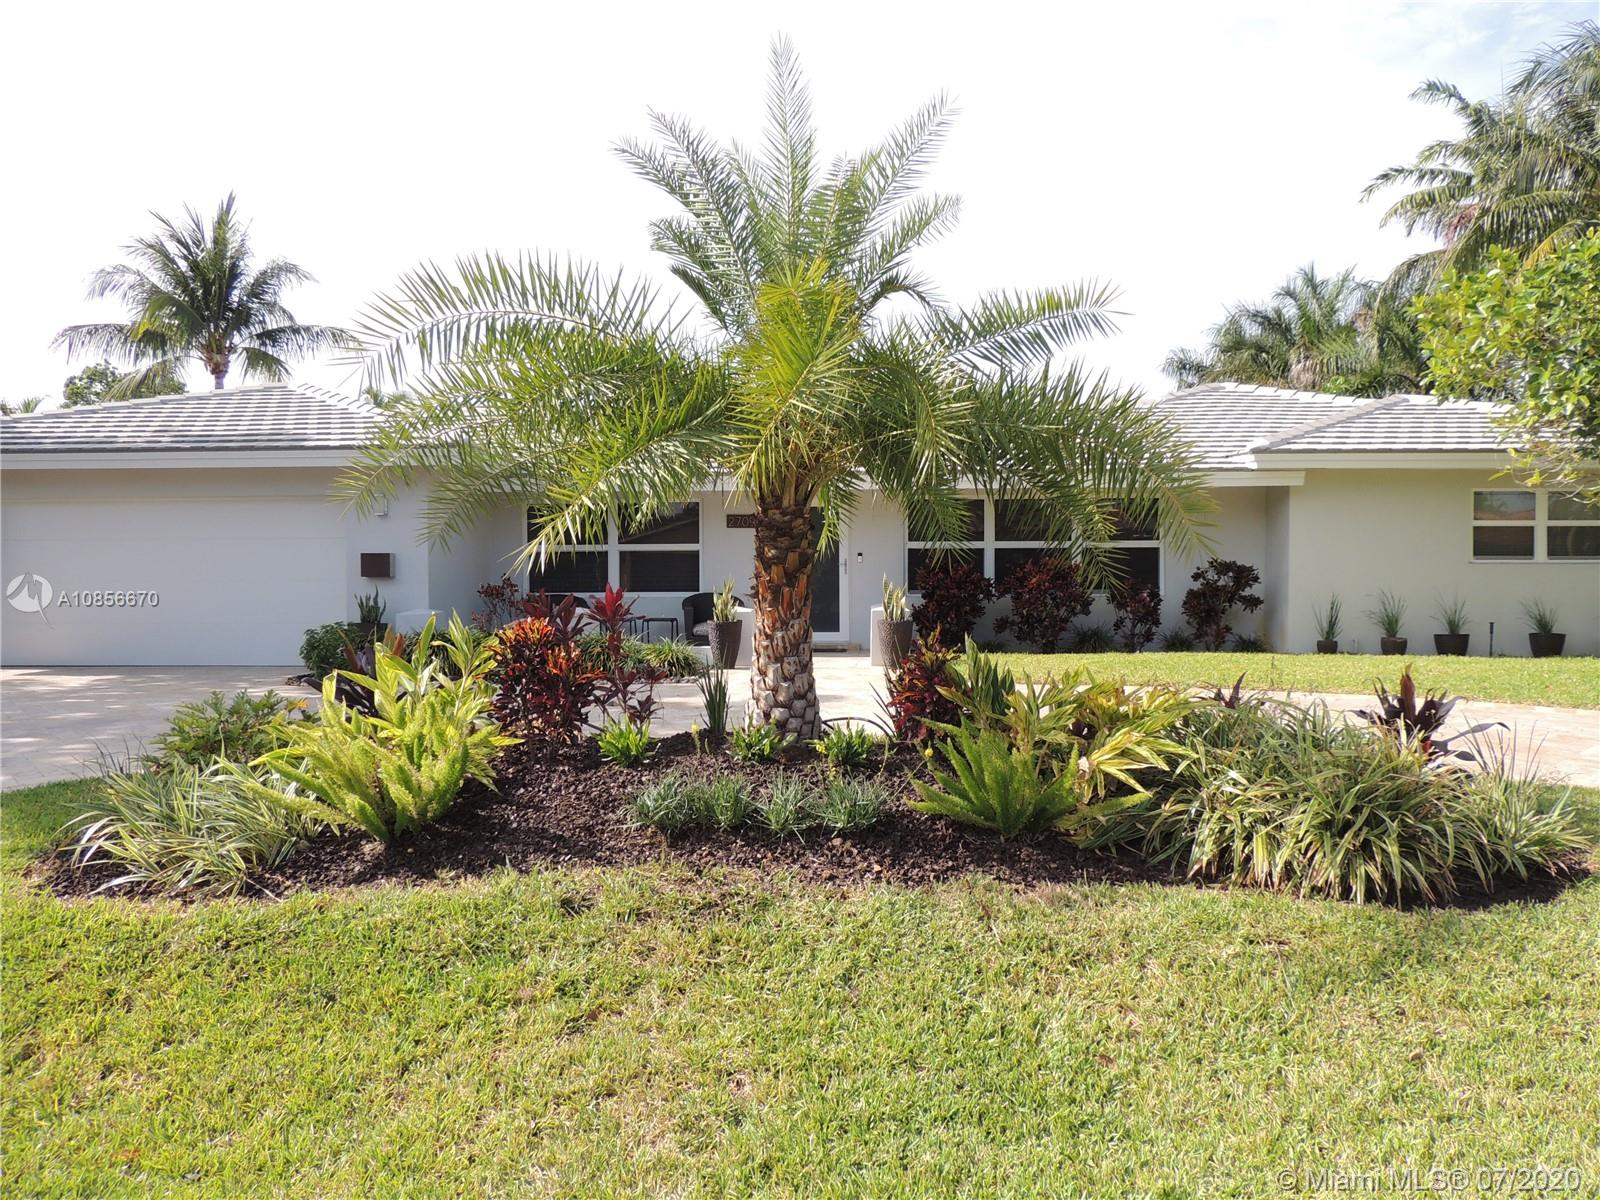 Remodeled home in much desired Coral Ridge. Open floor plan with 3 large bedrooms, bonus room that can be converted to a 4th room, living room and family room. Perfect house for entertaining. Kitchen overlooks the tropical pool and has Brazilian blue granite countertops with KitchenAid appliances.  Large walk in pantry with indoor Front loader washer /dryer. Beautiful travertine circular driveway and pool deck. Oversized pool with Catalina color ,blue iridescent tile, estimated 8 ft deep ,infiniti waterfall and large sitting bench.  Custom doubledeck fort -7 ft.  slide on artificial grass. Tropical trees mango, avocado, star and jack fruit. Fully fenced backyard with updated landscaping. All impact windows and doors, roof 2018, new water heater, pool pump, and epoxy garage flooring.